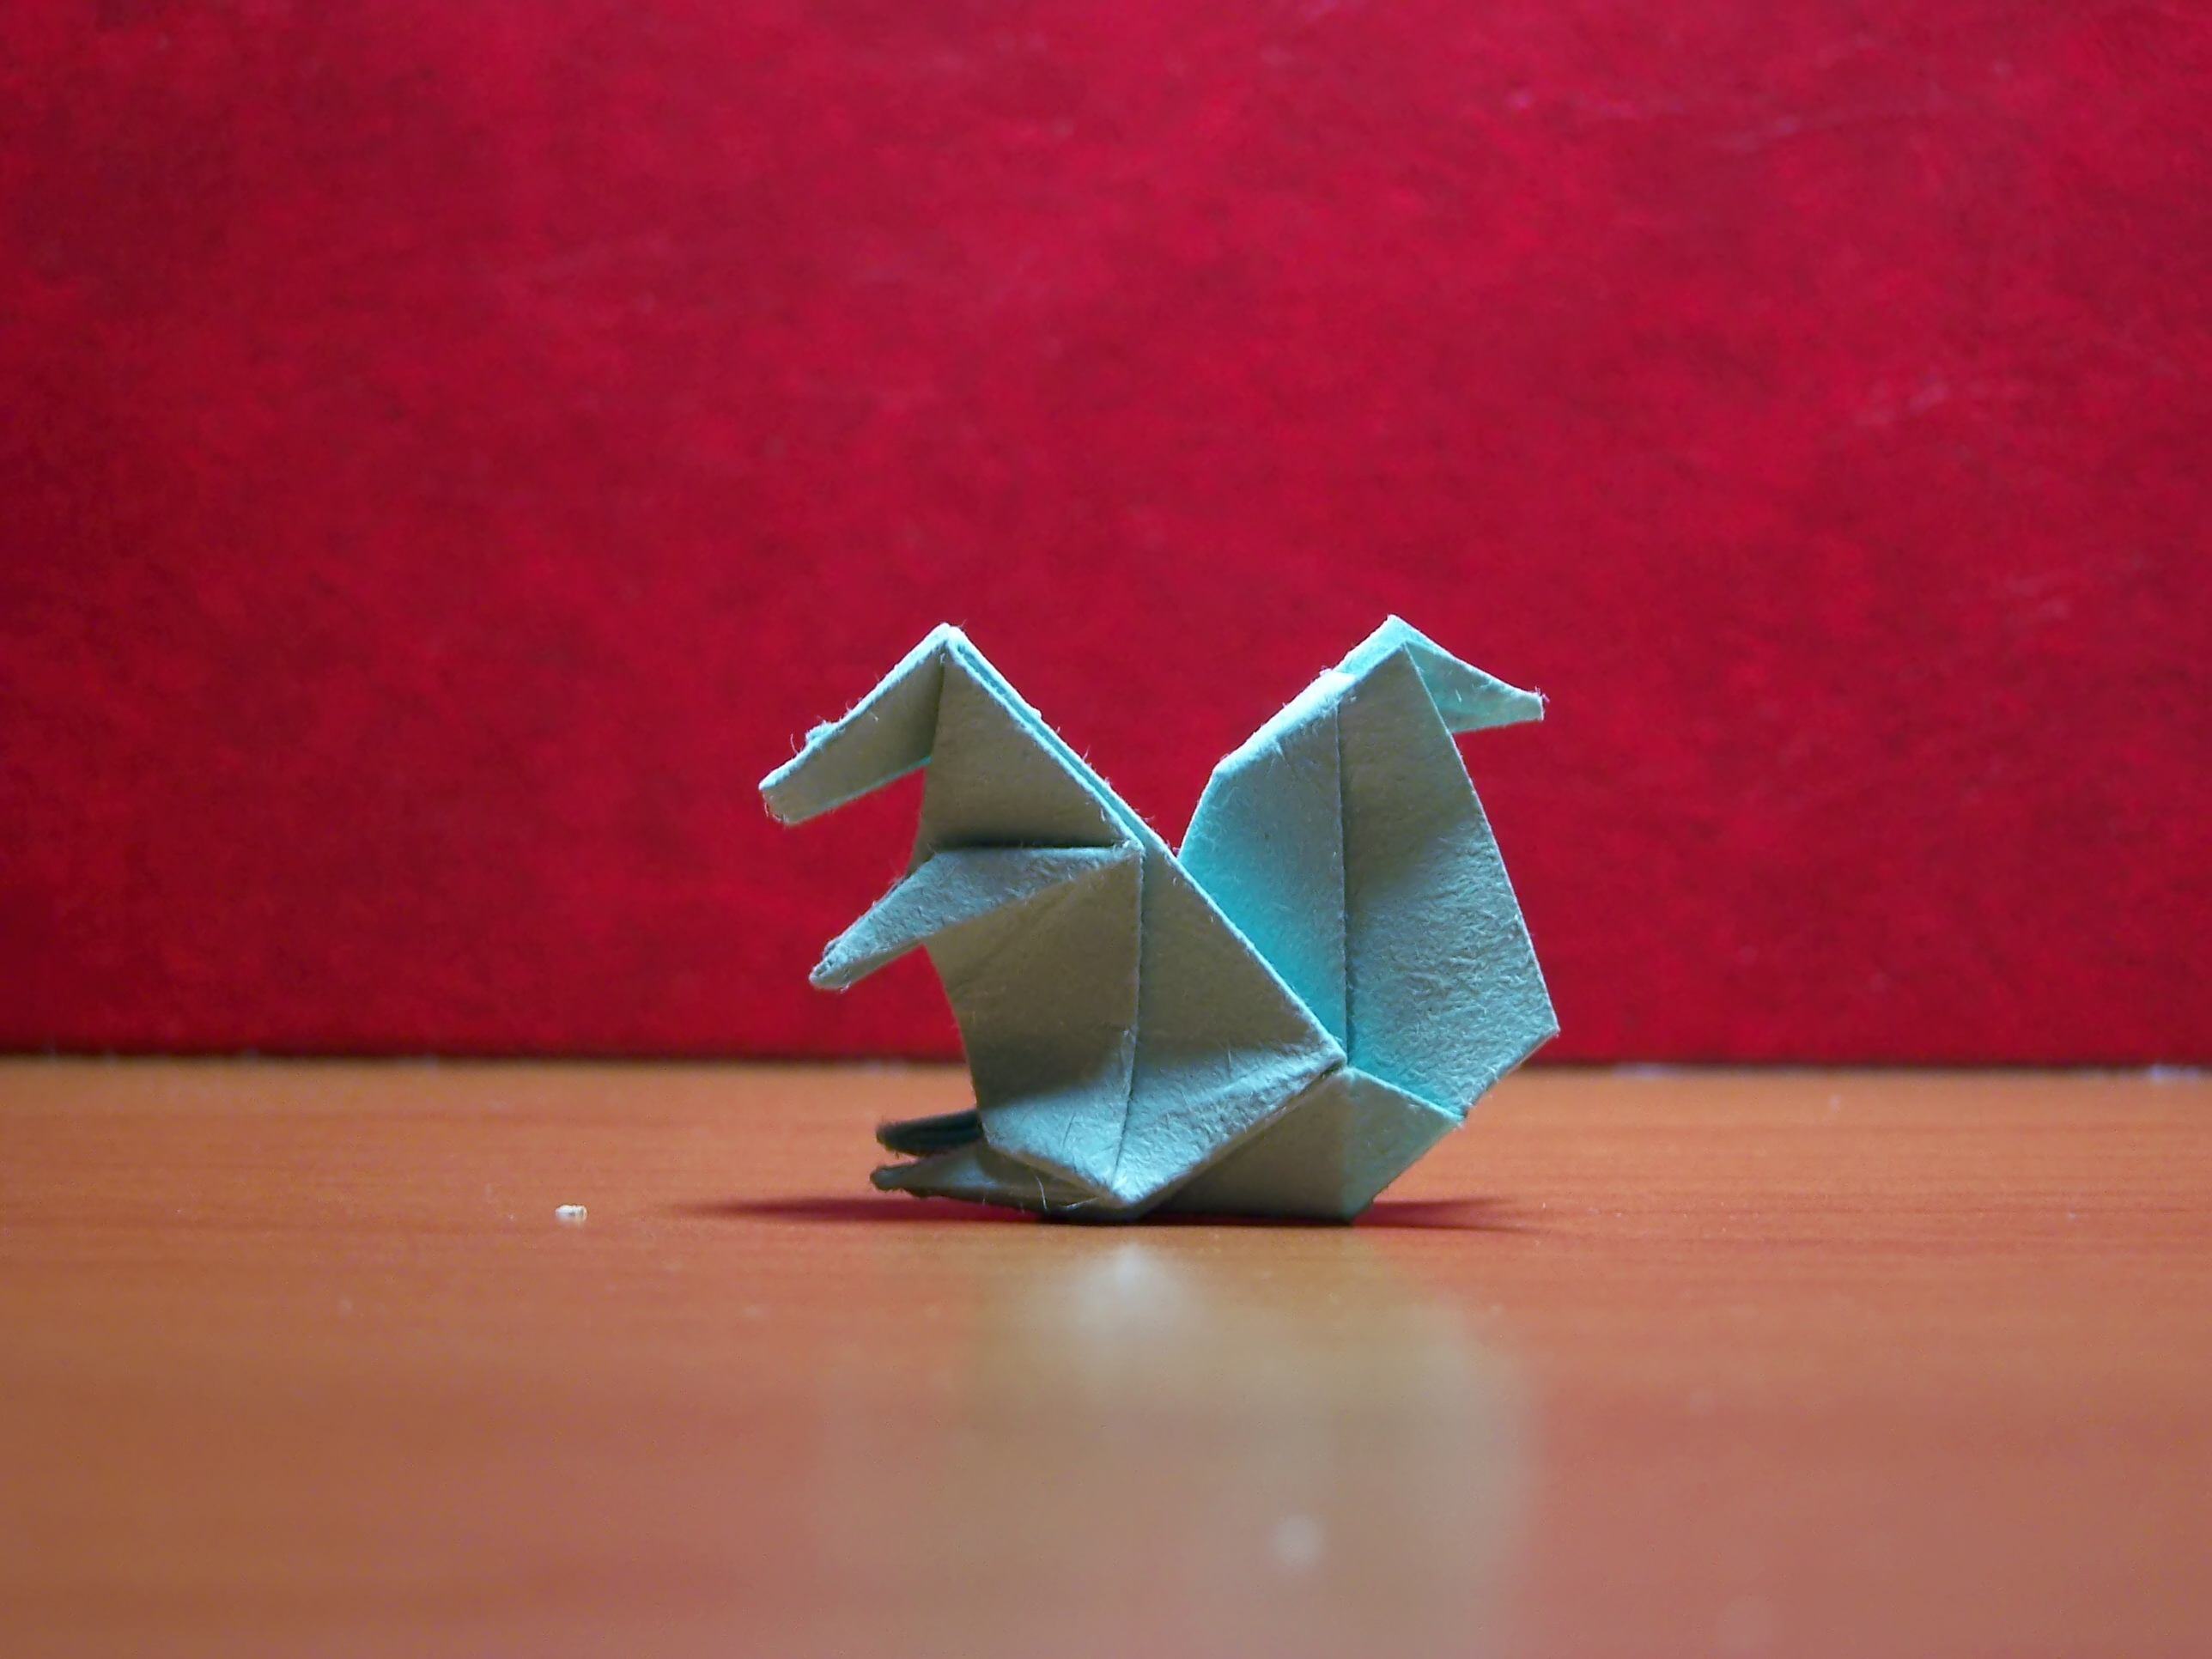 Easy Origami Animals - page 4 of 6 (Squirrel - 2 of 2) | Origami facile,  Animaux en origami faciles, Origami animaux | 1932x2576